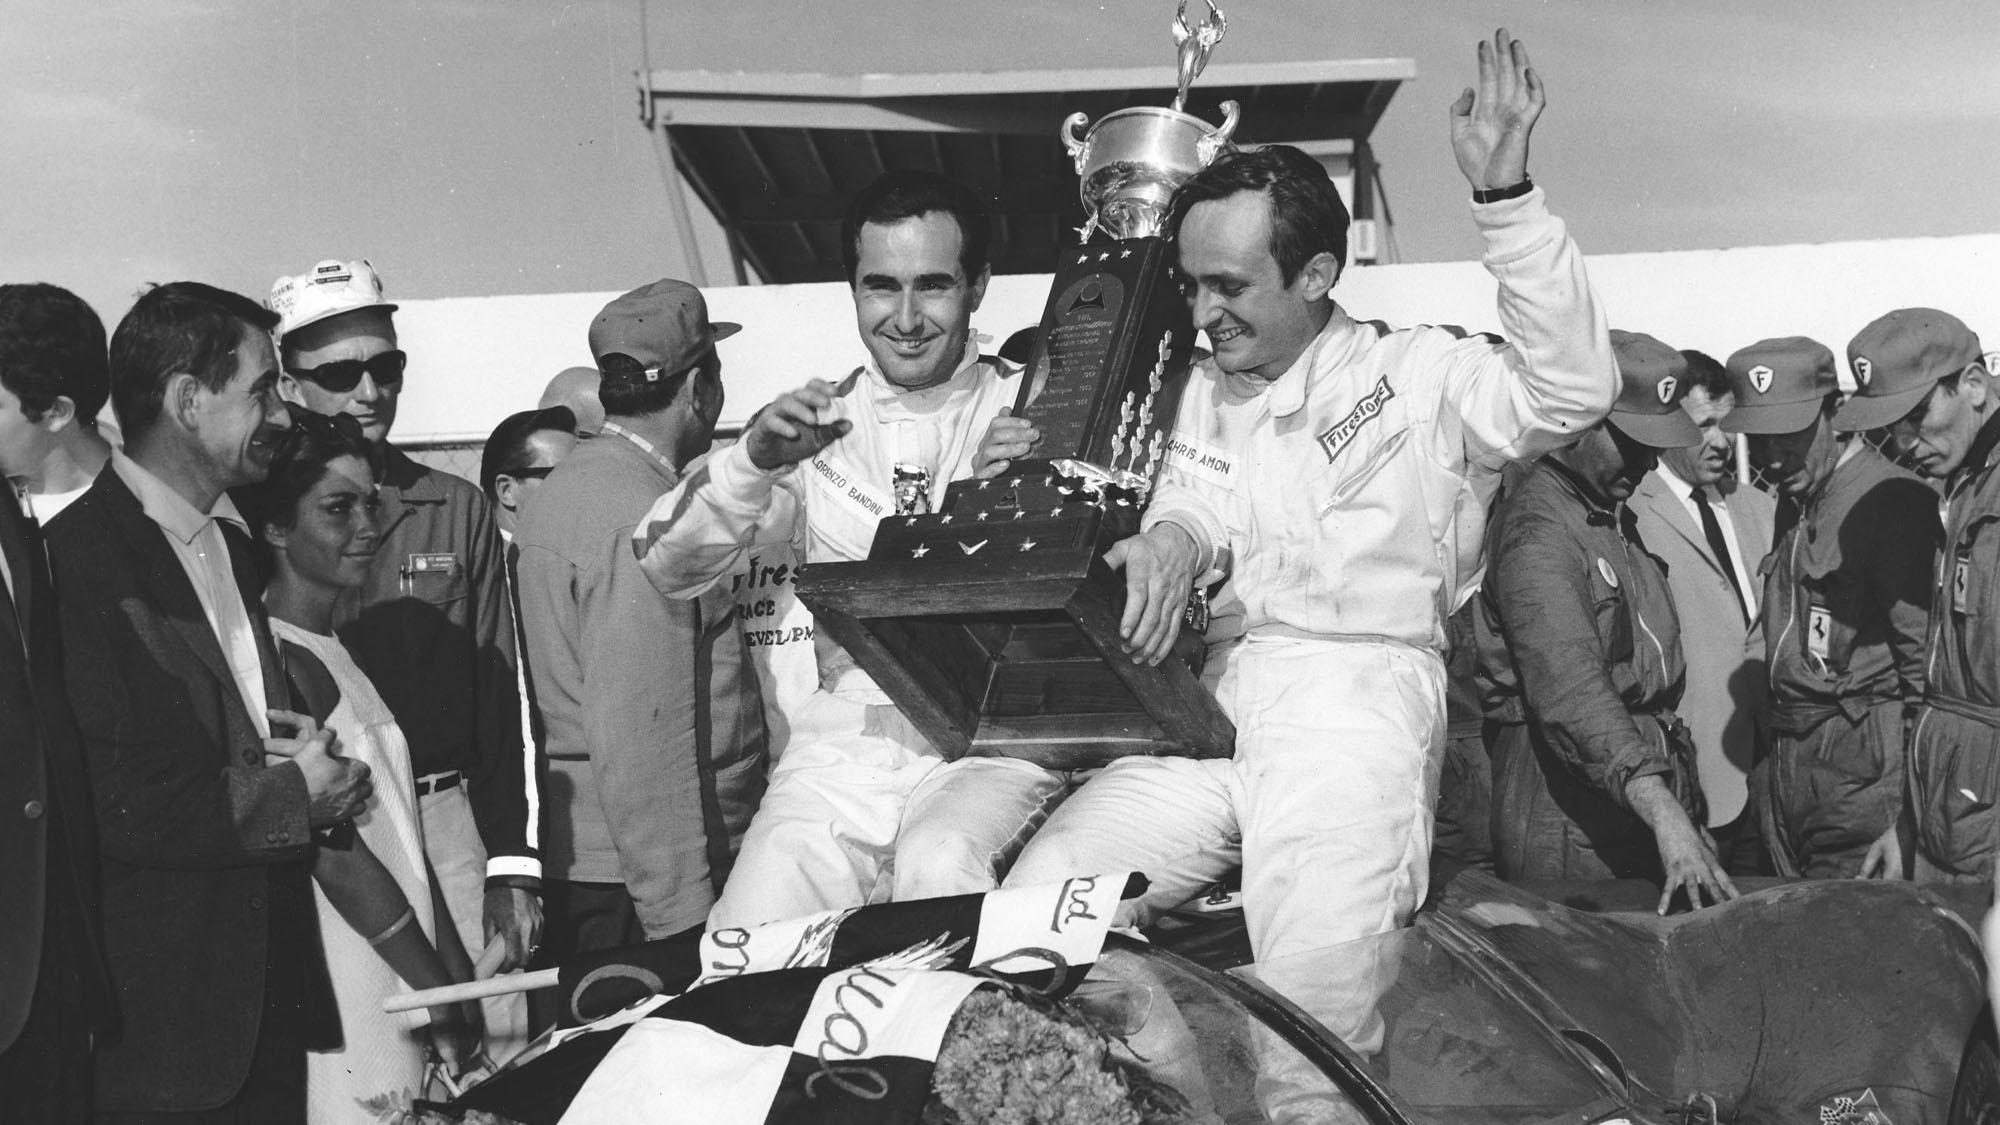 DAYTONA BEACH, FL - FEBRUARY 5, 1967: Lorenzo Bandini and Chris Amon celebrate in victory lane after driving a Ferrari 330 P4 to victory in the 24 Hour Daytona Continental at Daytona International Speedway. (Photo by ISC Images & Archives via Getty Images)